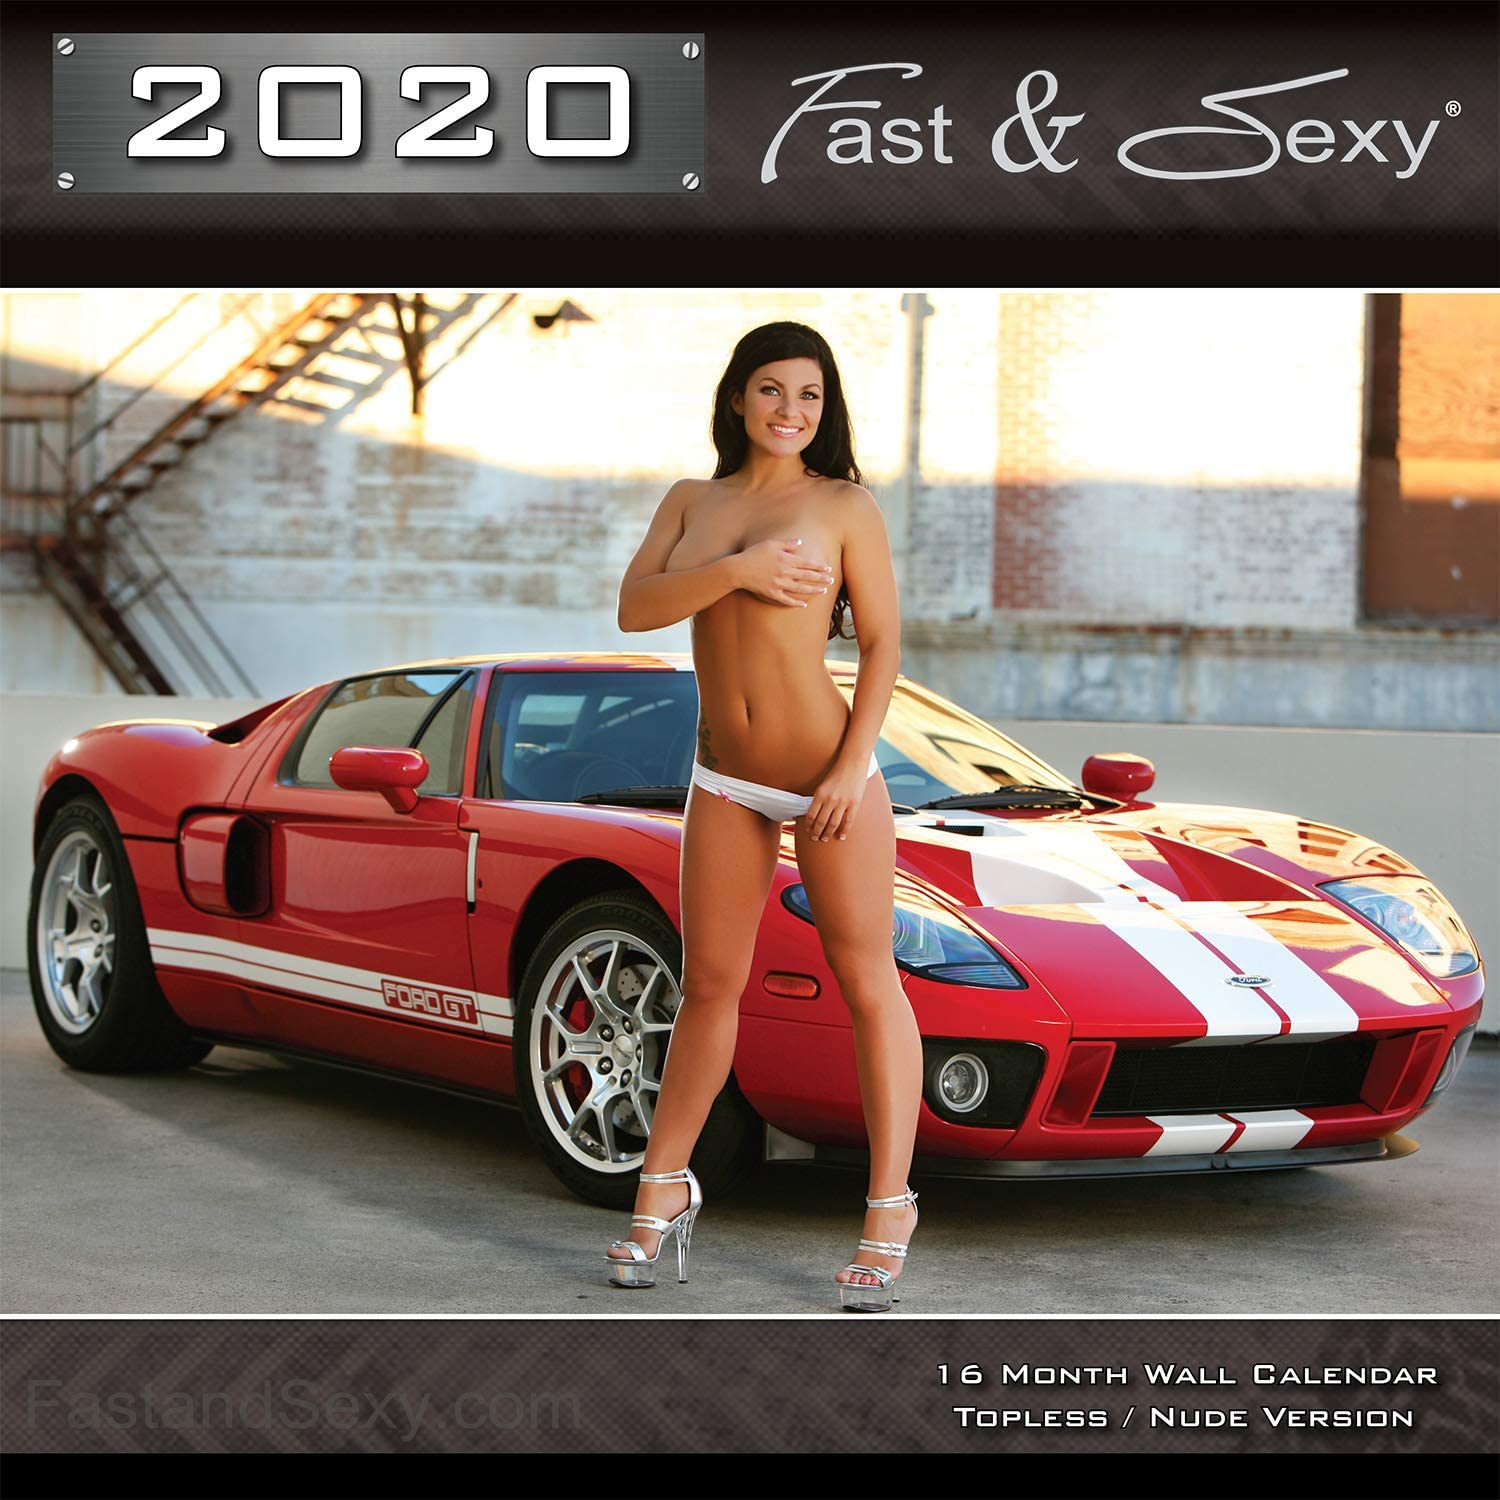 naked babes an cool cars